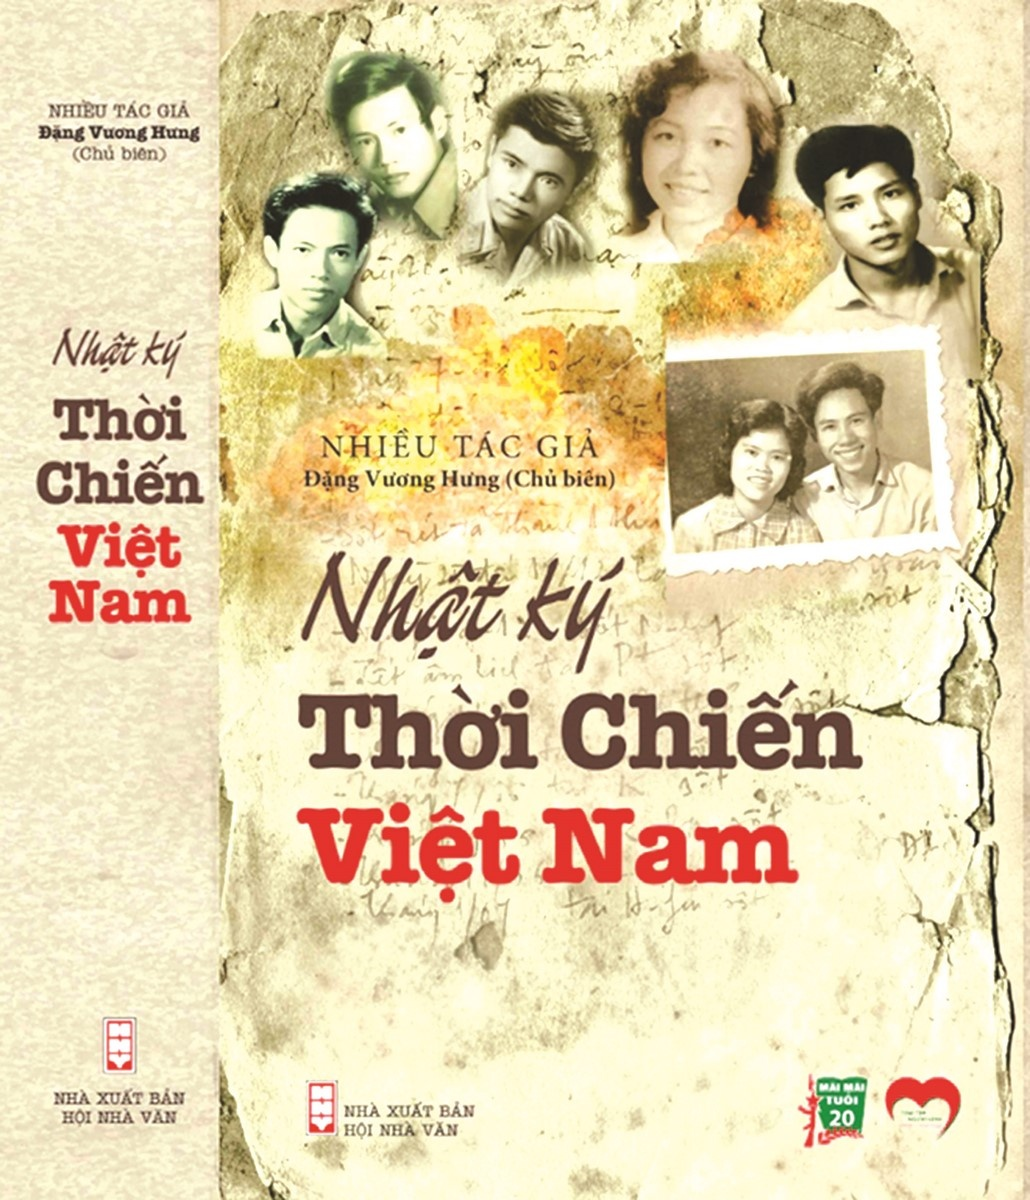 song mai nhat ky thoi chien viet nam